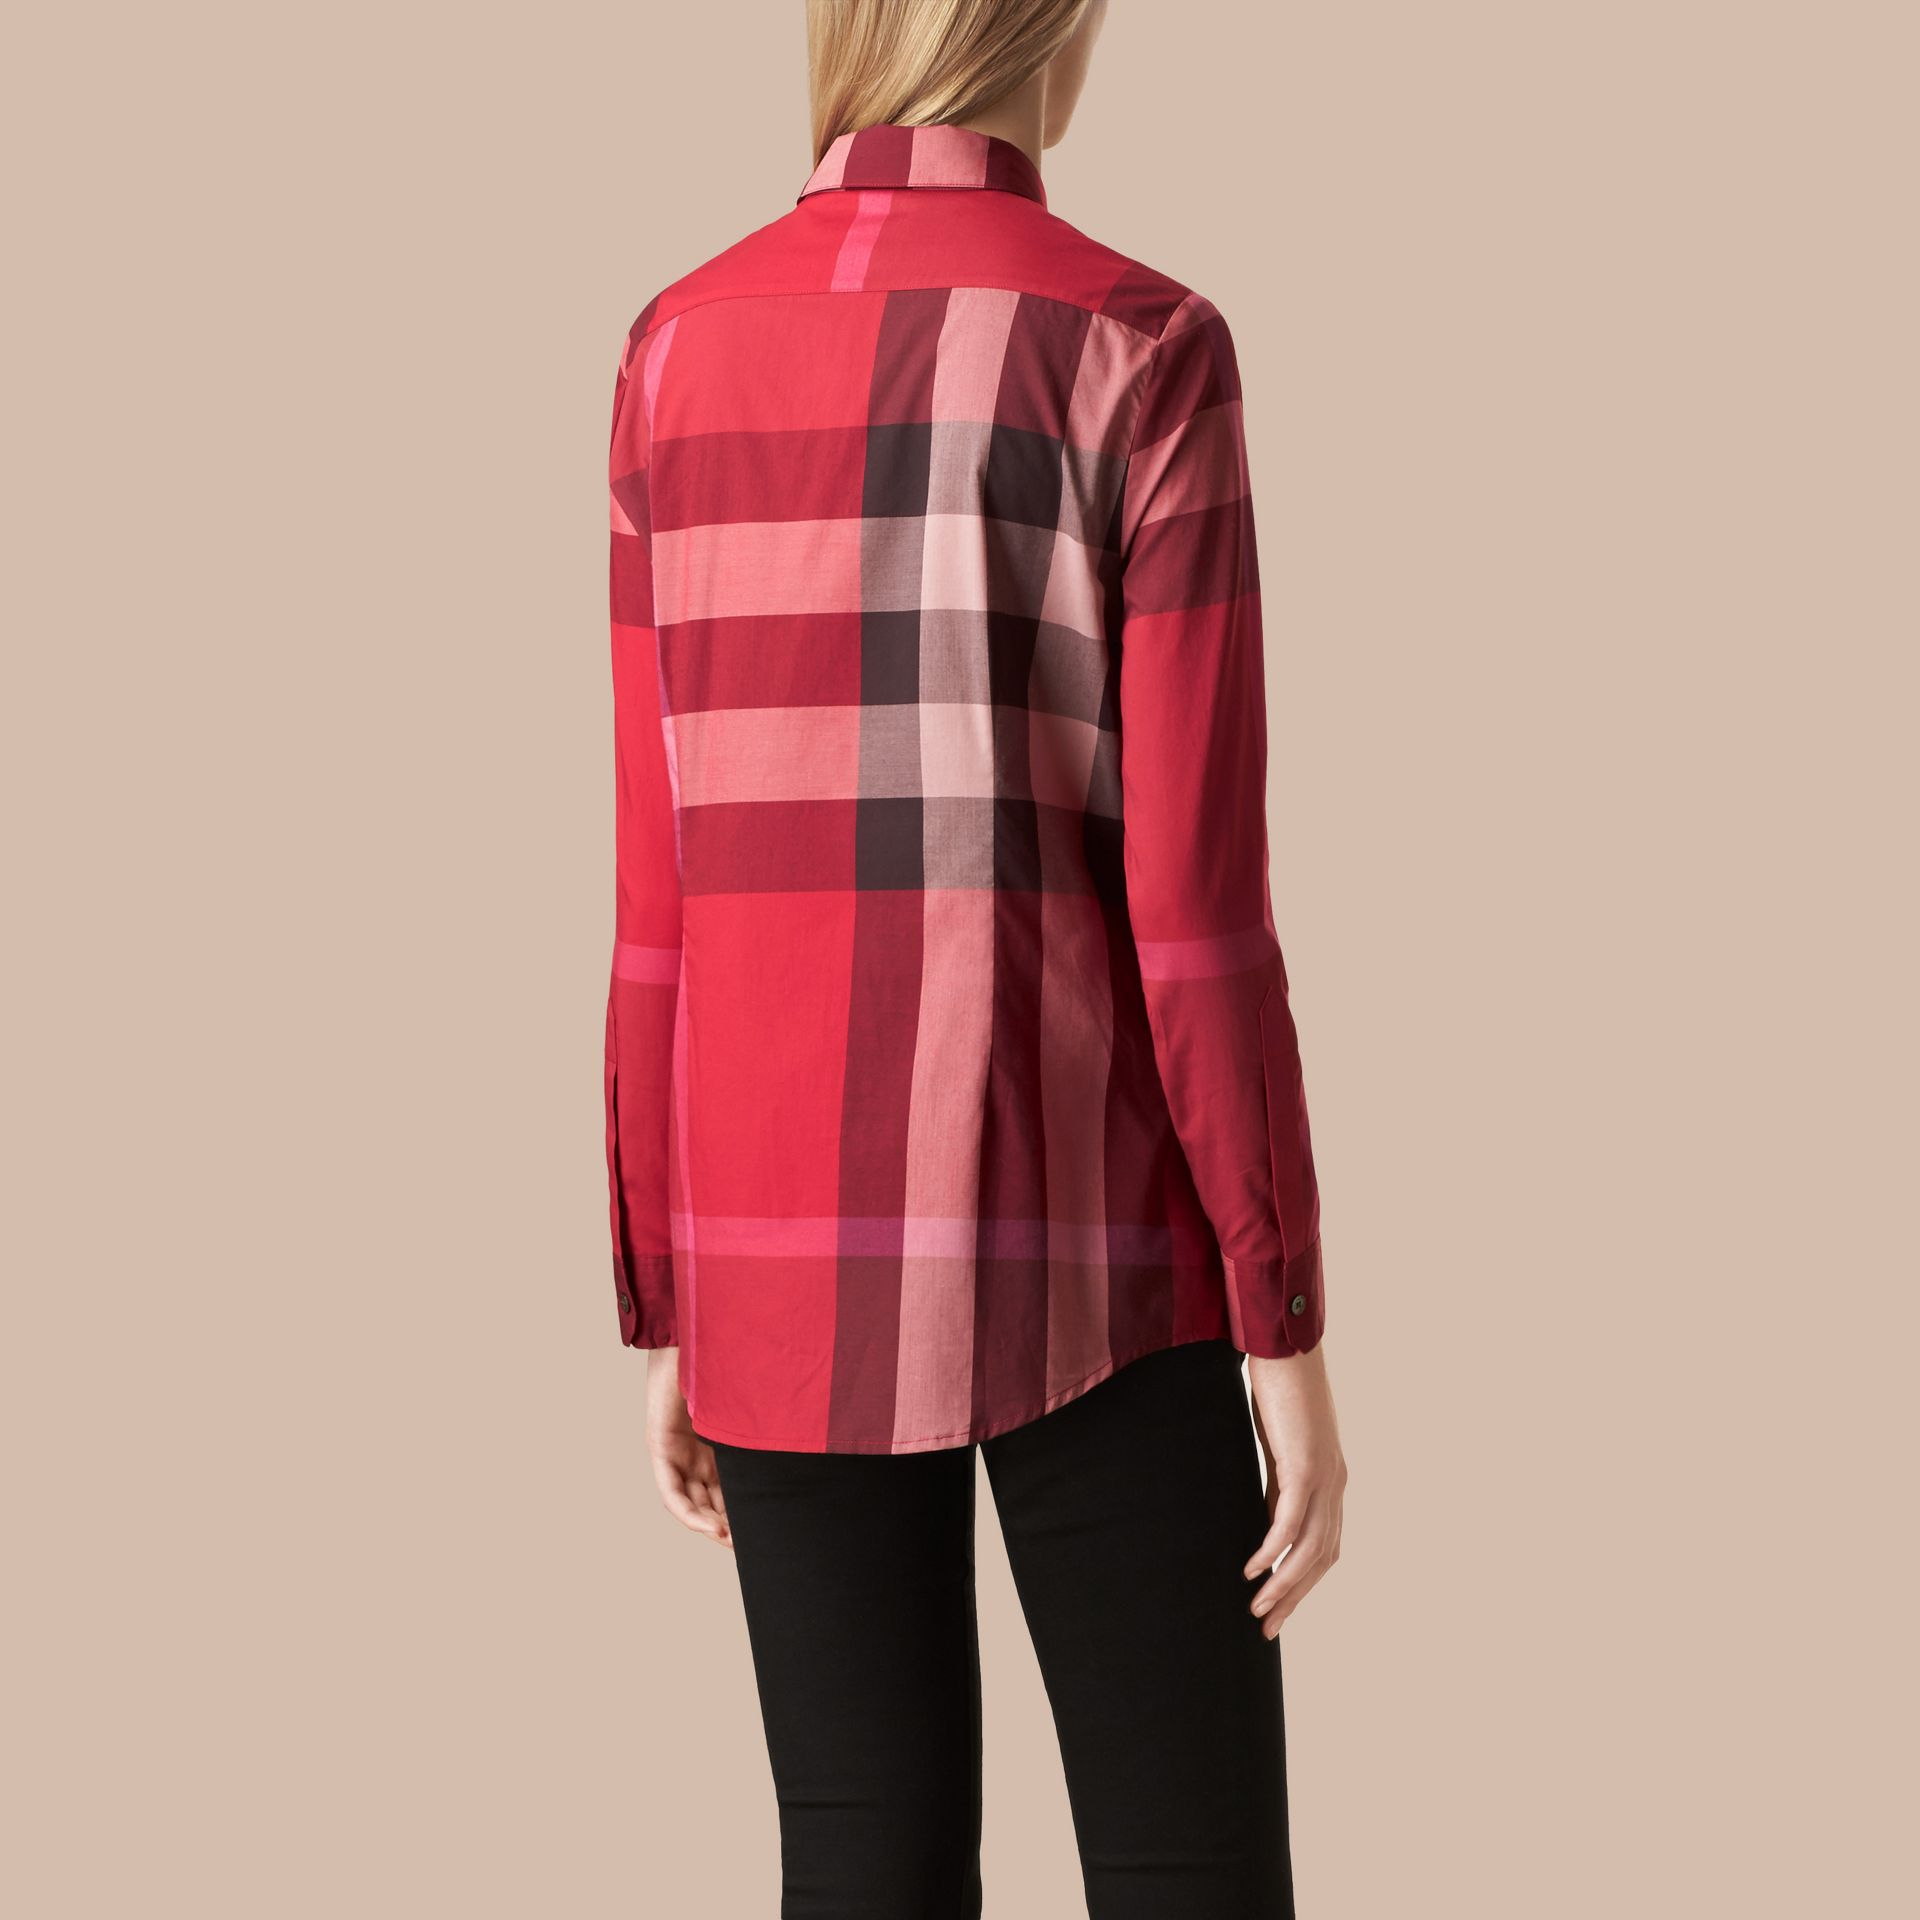 Berry red Check Cotton Shirt Berry Red - gallery image 3